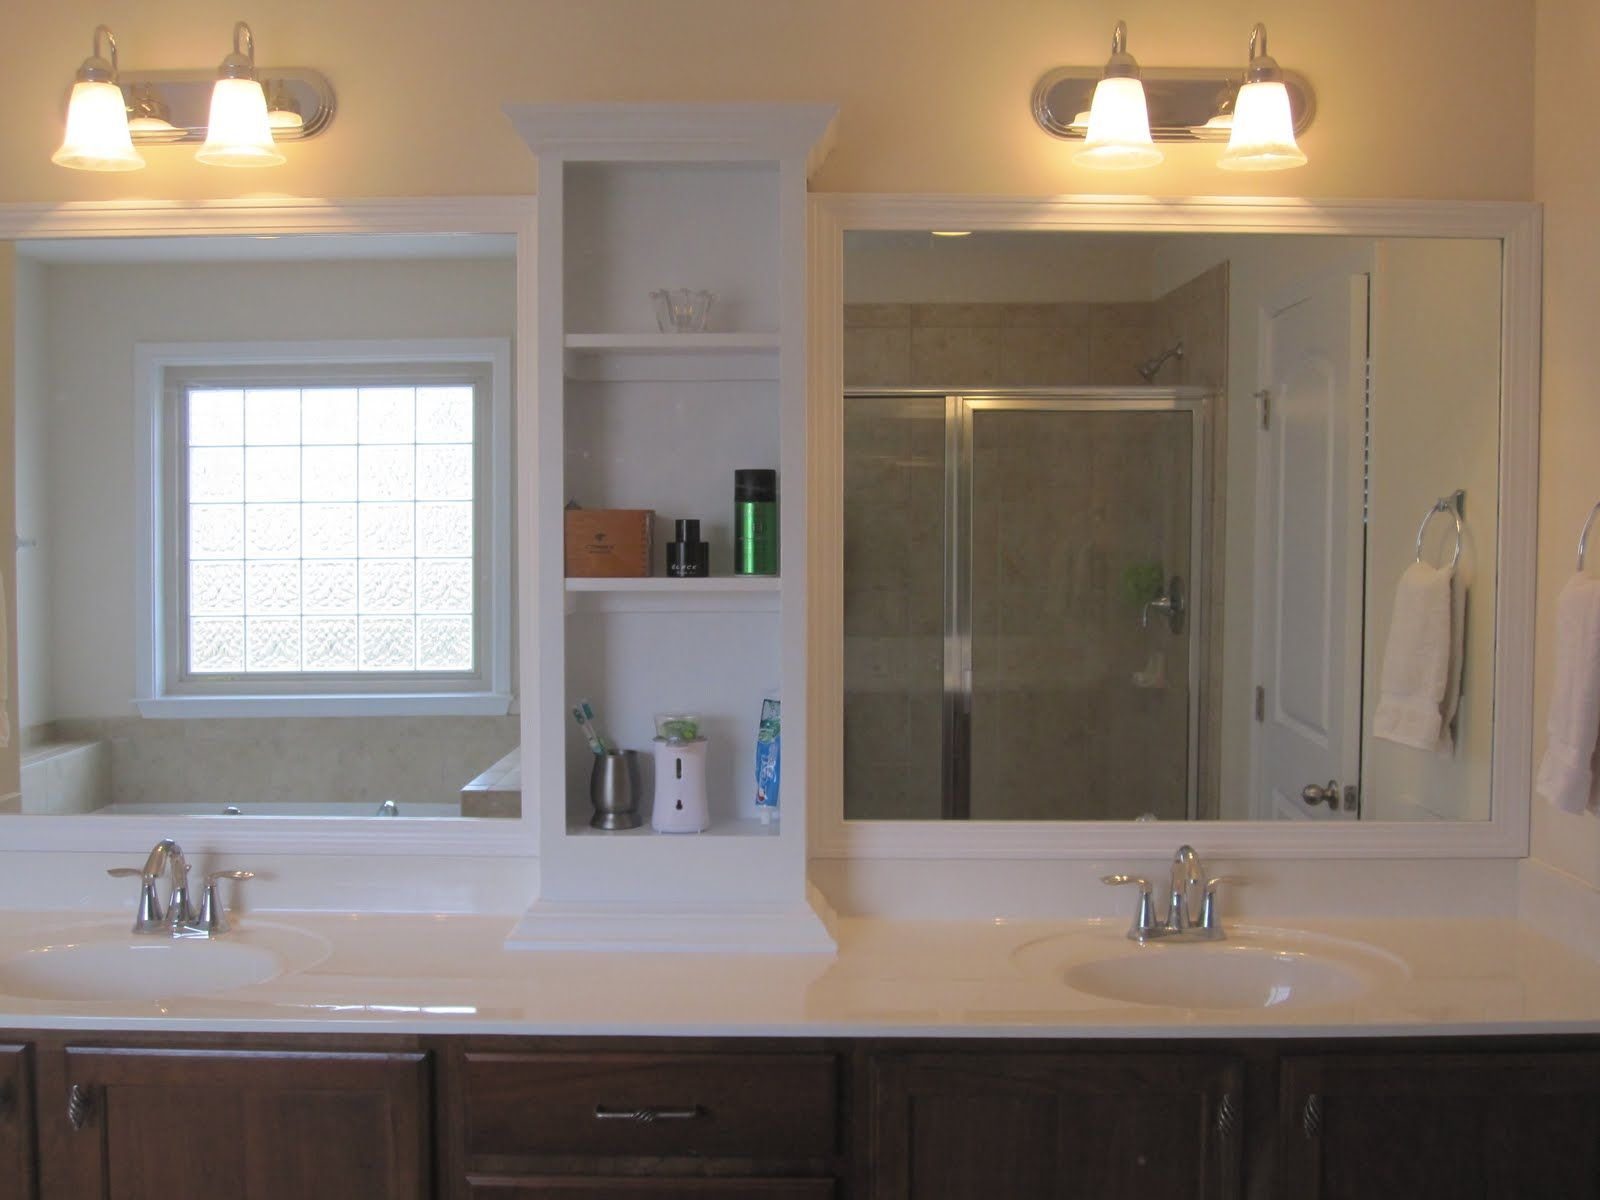 Create Photo Gallery For Website Best Of Ikea Bathroom Shelf With White Top And Undermount Sink With Chrome Faucet On Brown Cabinet And White Tall Satin Rack In Middle Beveled Mirror Trim